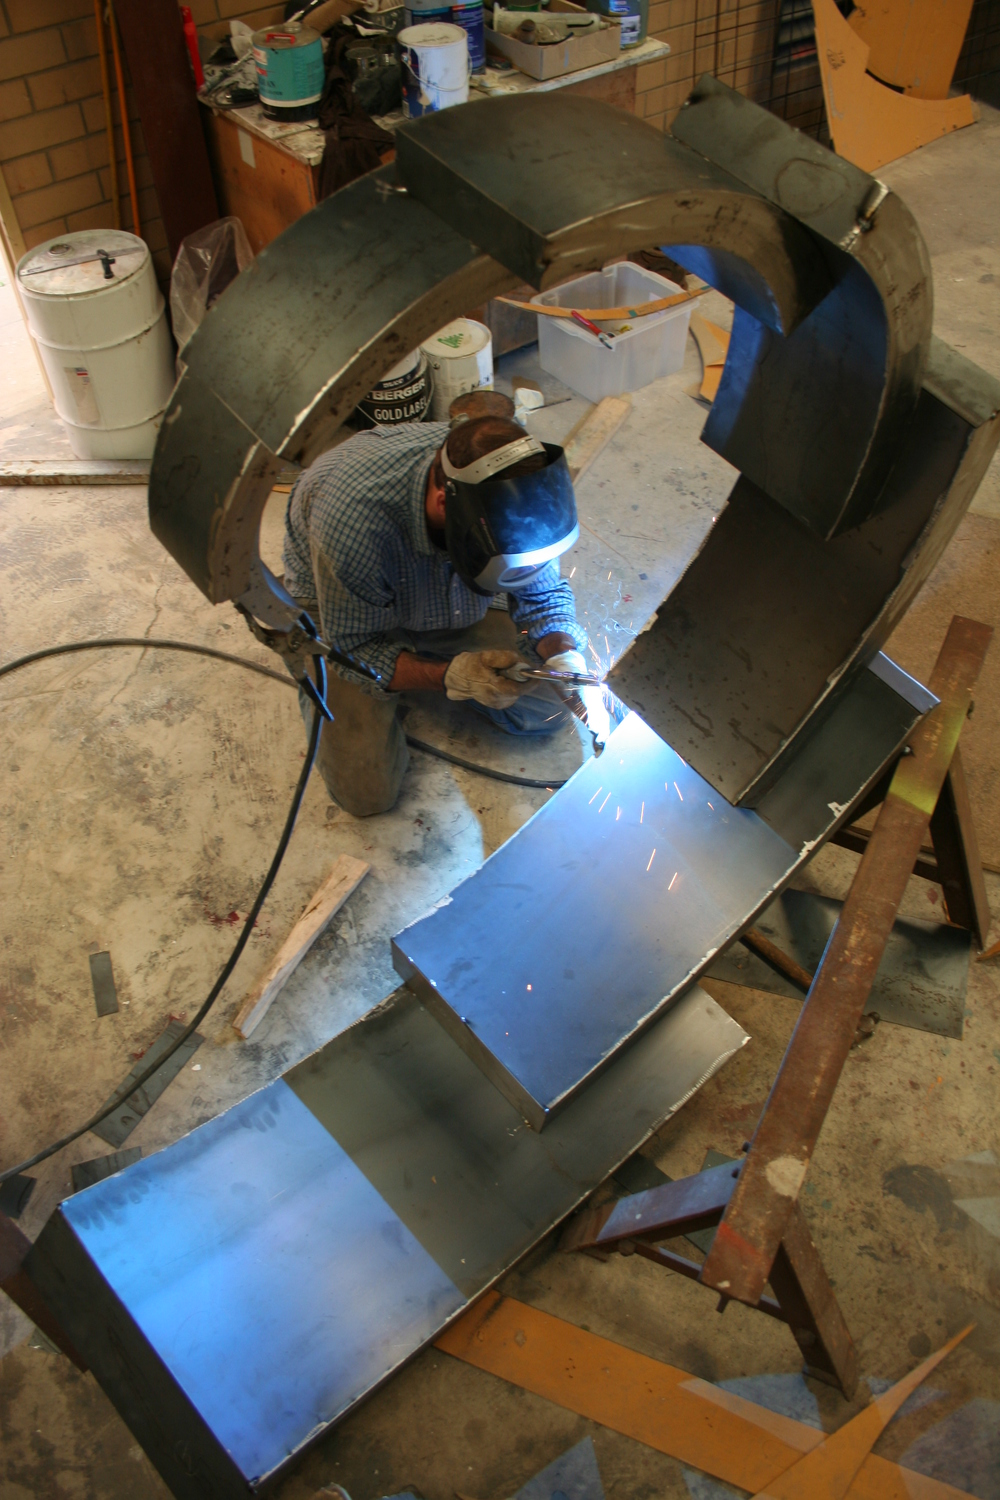 Johannes welding the segmented pieces together  in his workshop